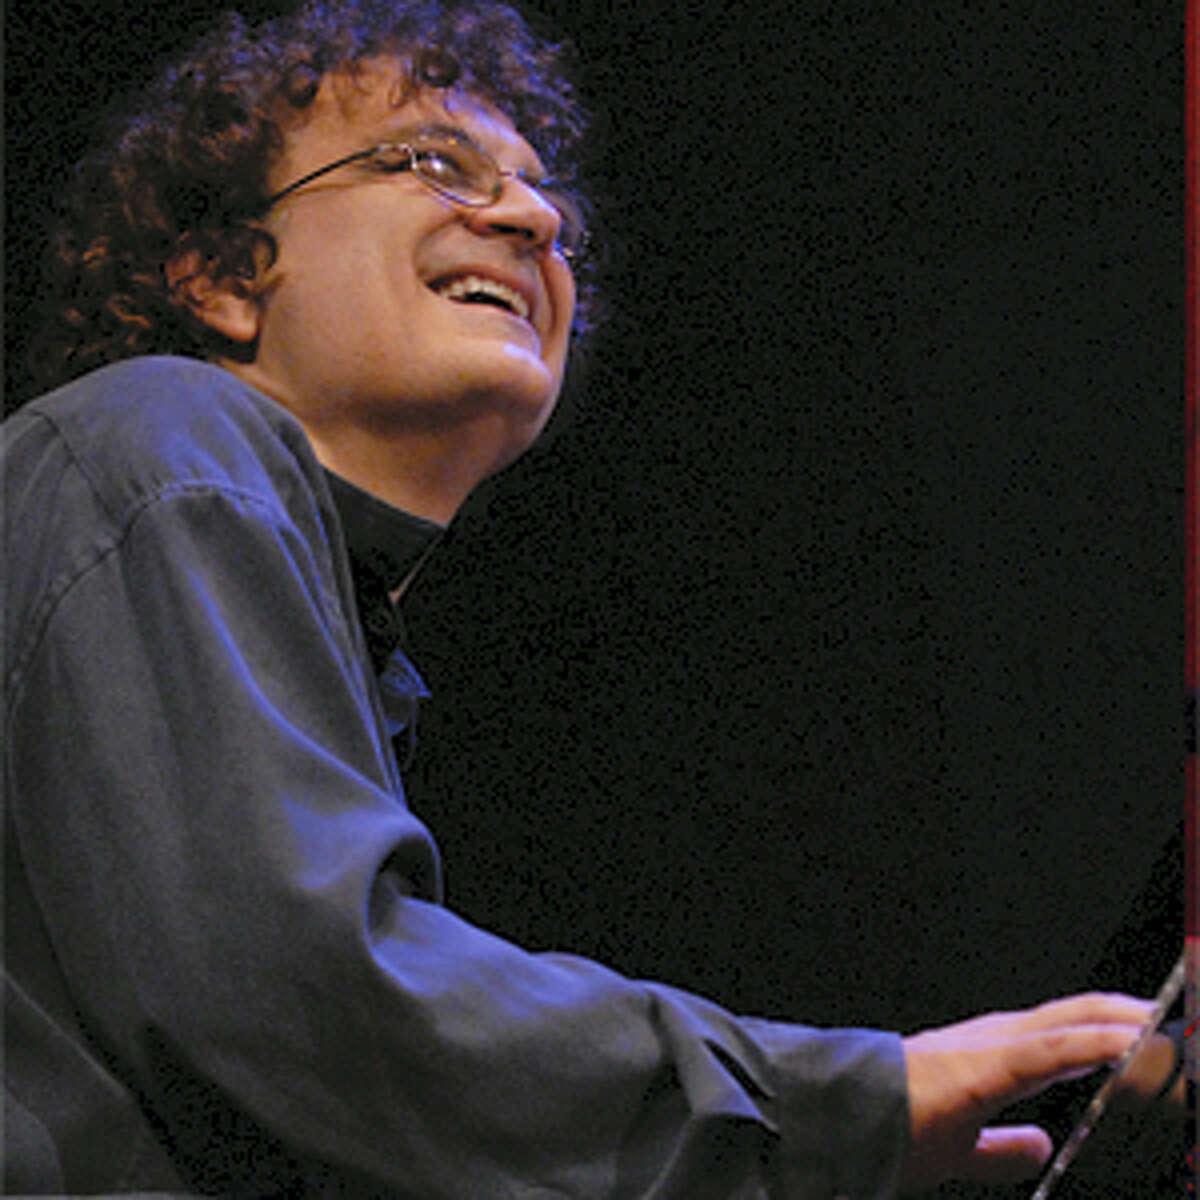 Contributed photoNew England's world-class musicians, Laszlo Gardony (piano) and Marco Pignataro (saxophone) will perform at the Buttonwood July 9.